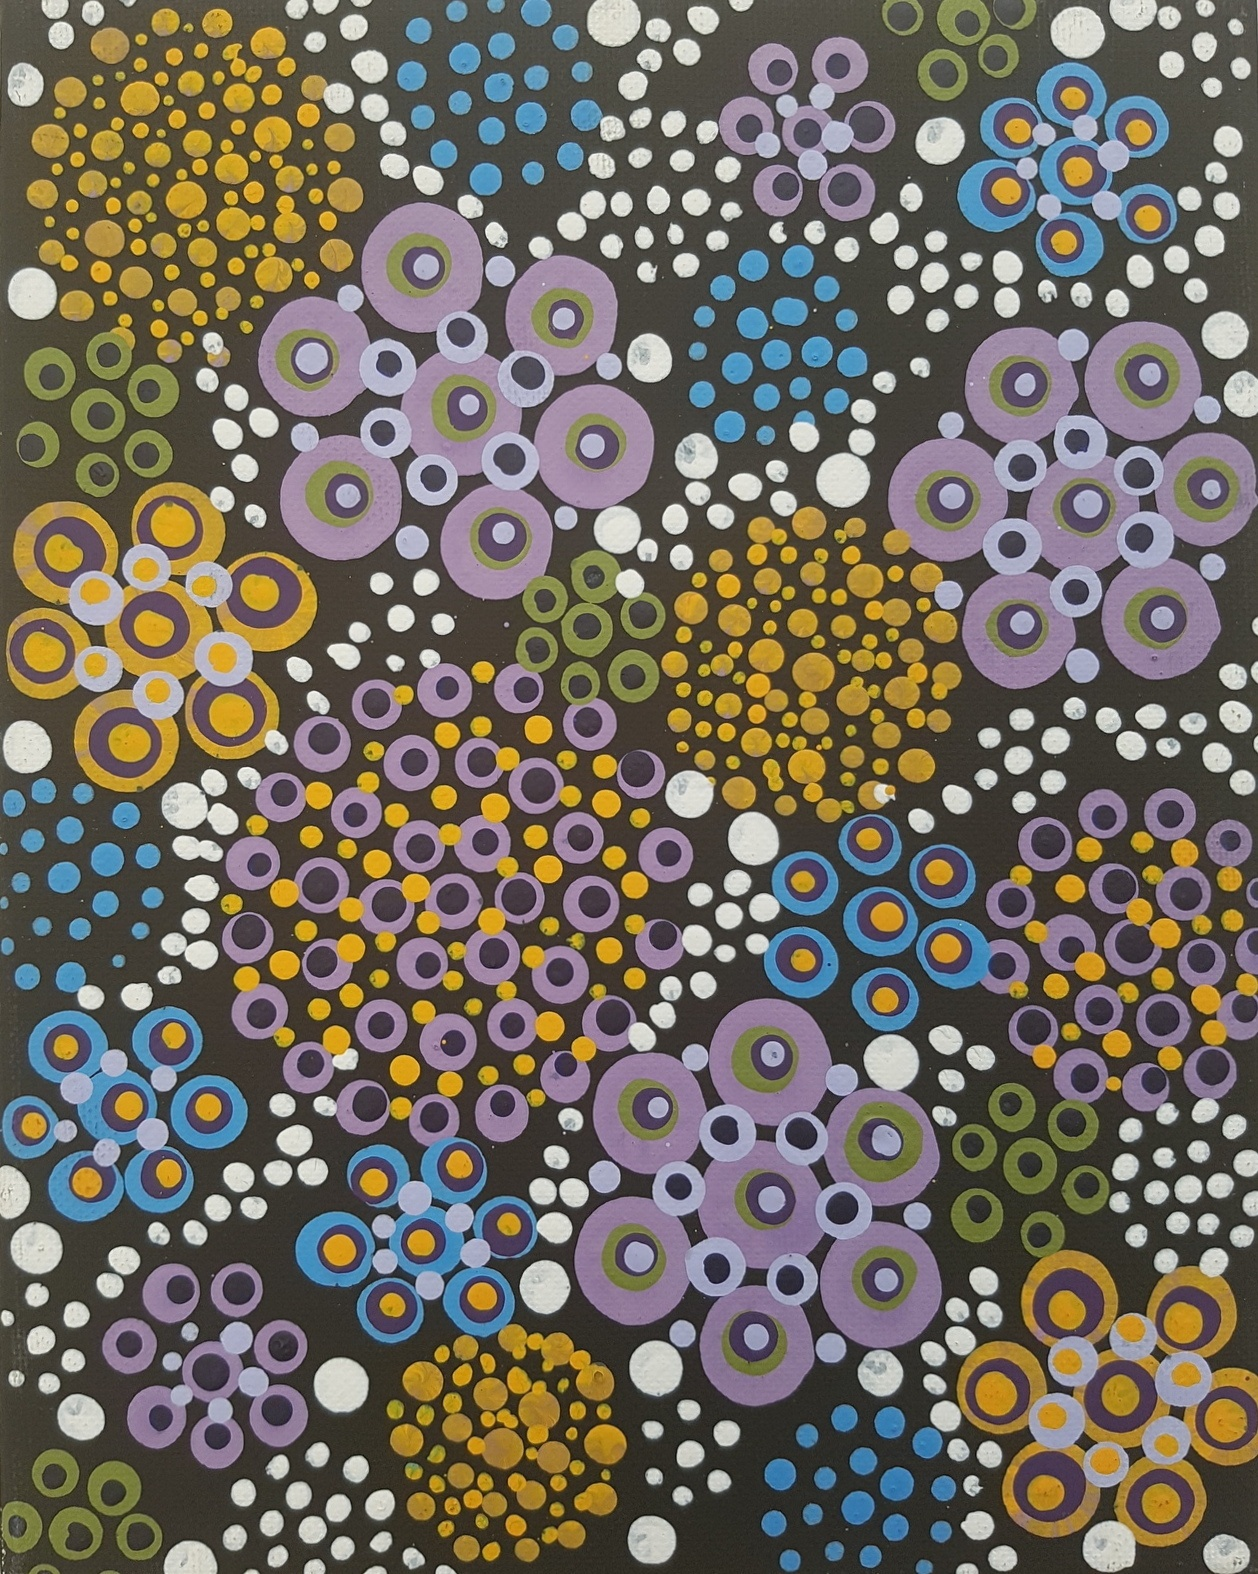 3D dot painting: Flowers in my garden